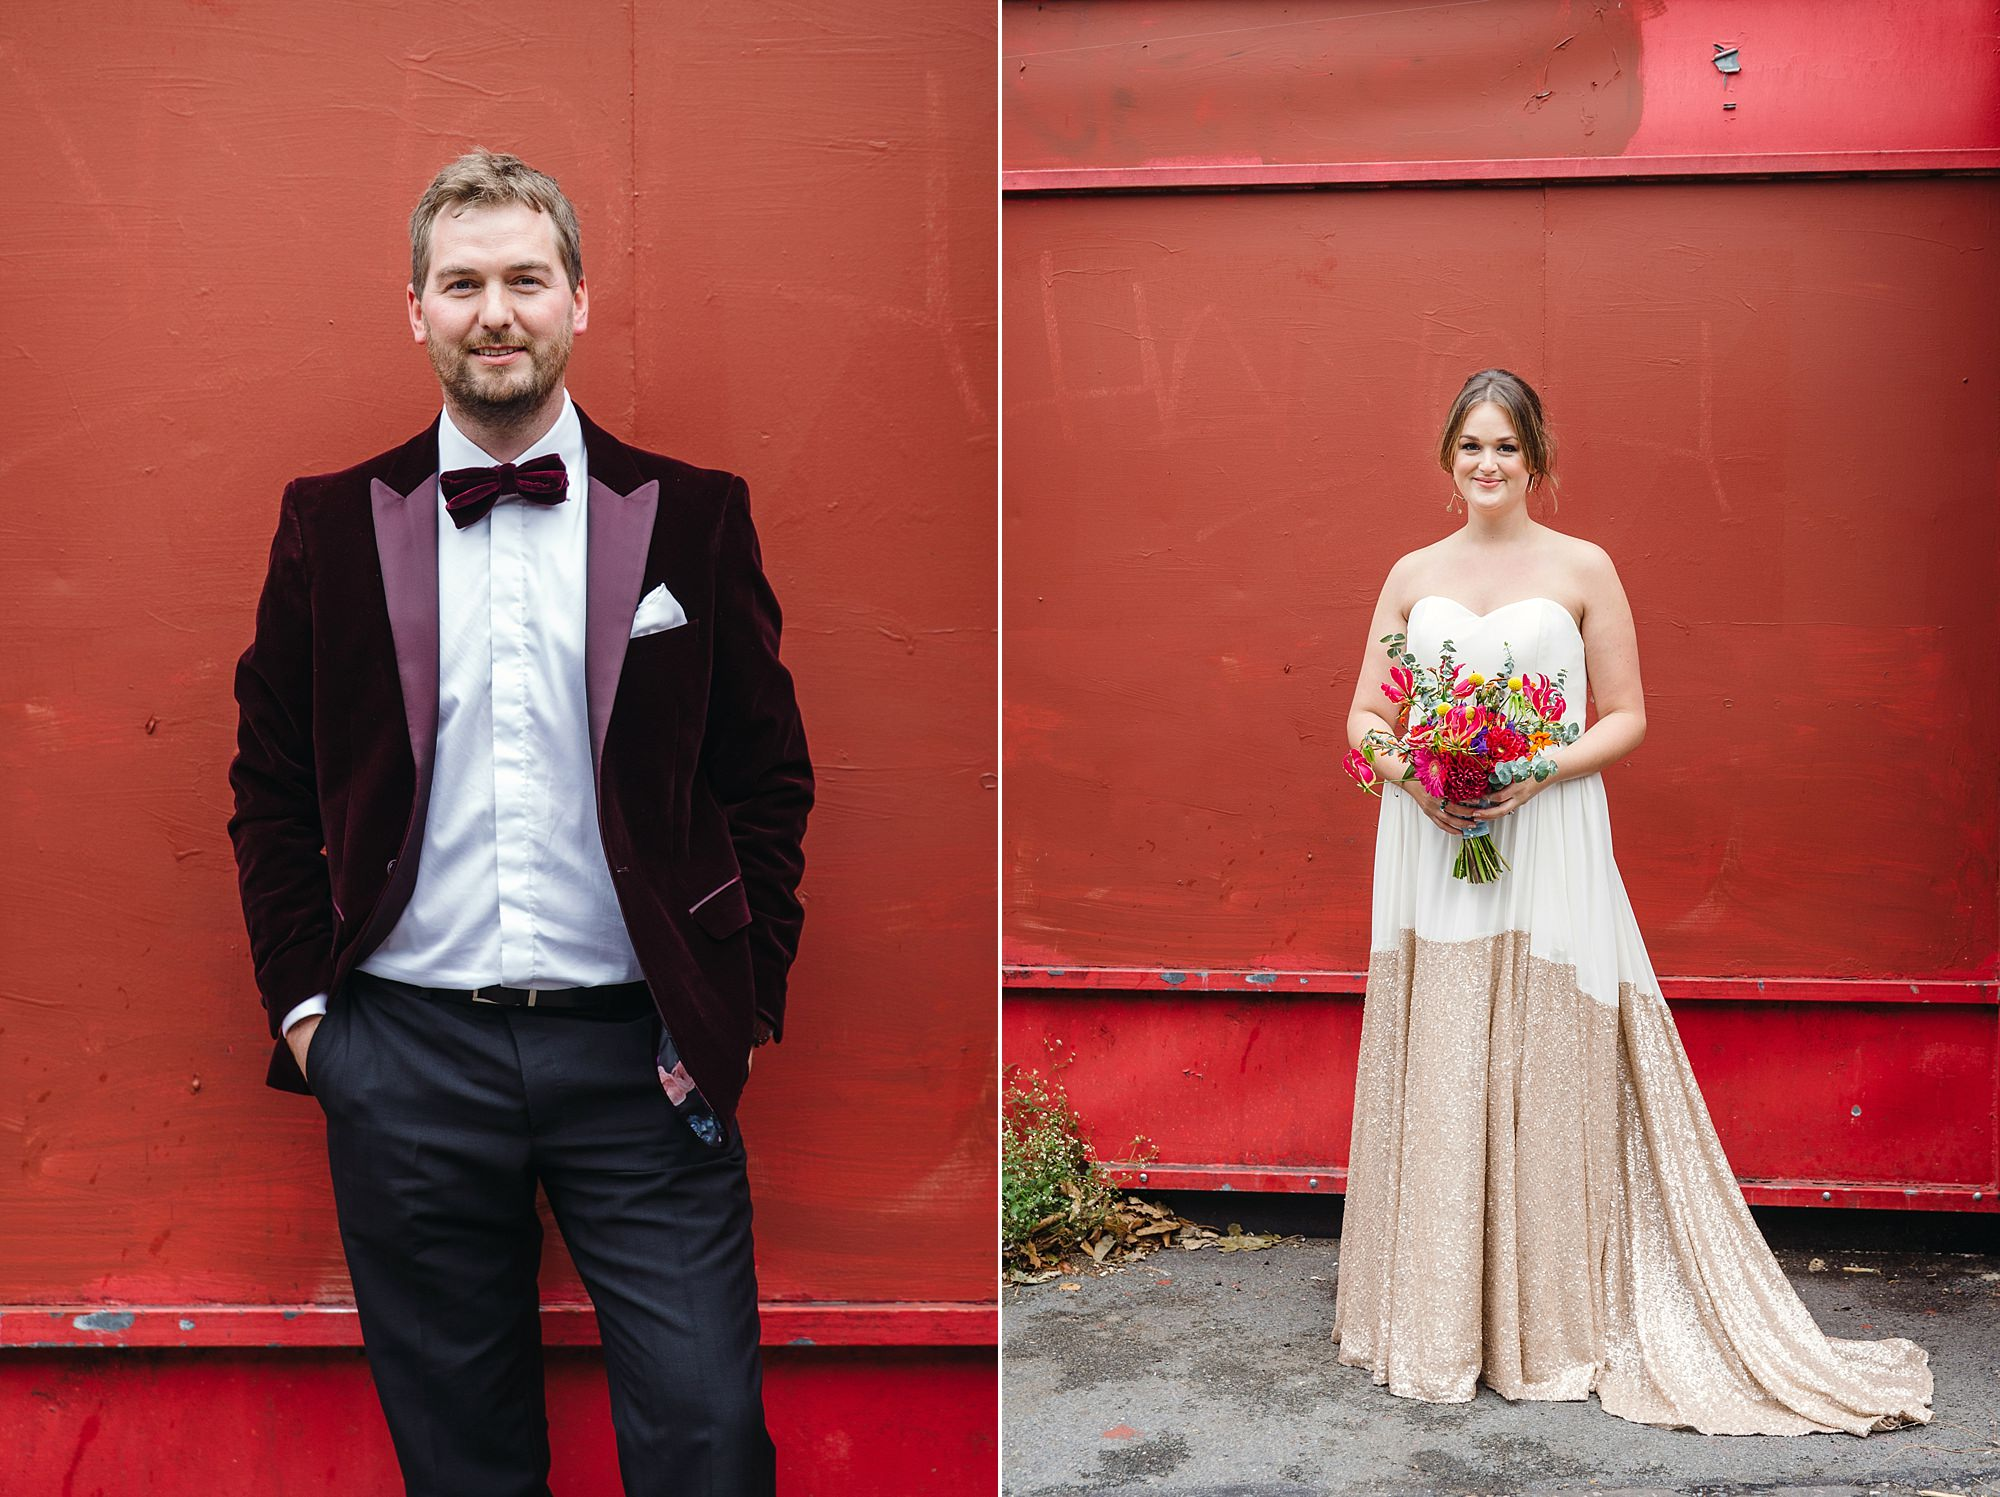 Fun London Wedding groom and bride urban portrait in front of red wall in brixton